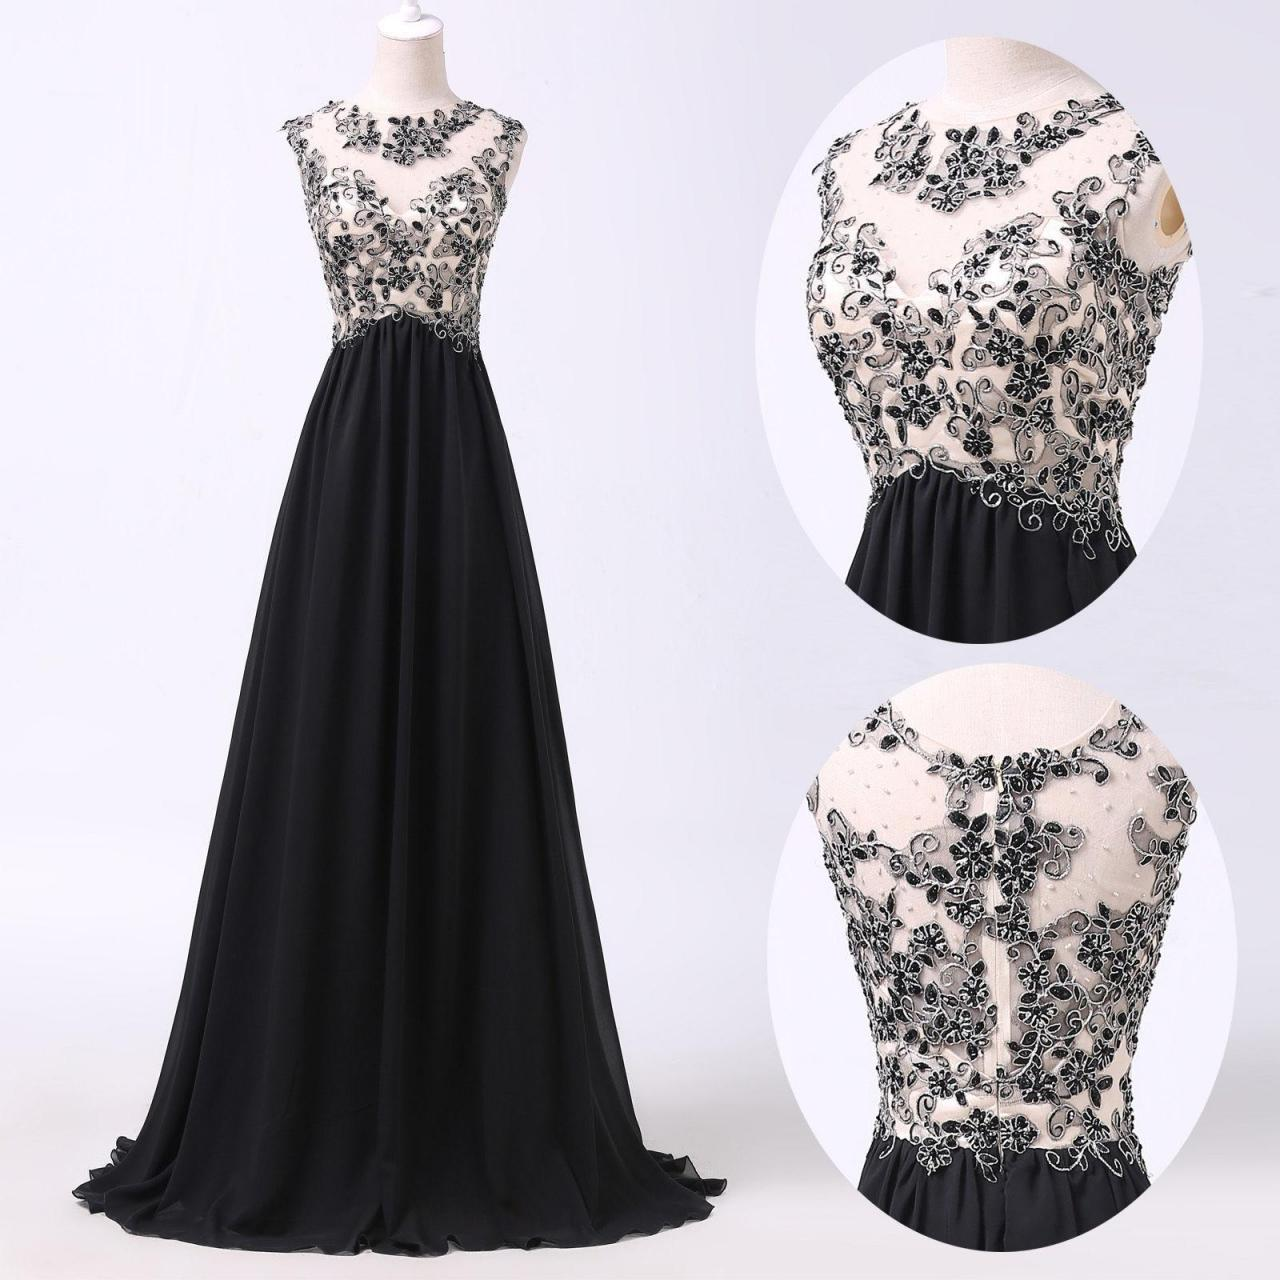 Fashion o neck sleeveless appliqued and beaded a line floor length long black party dress